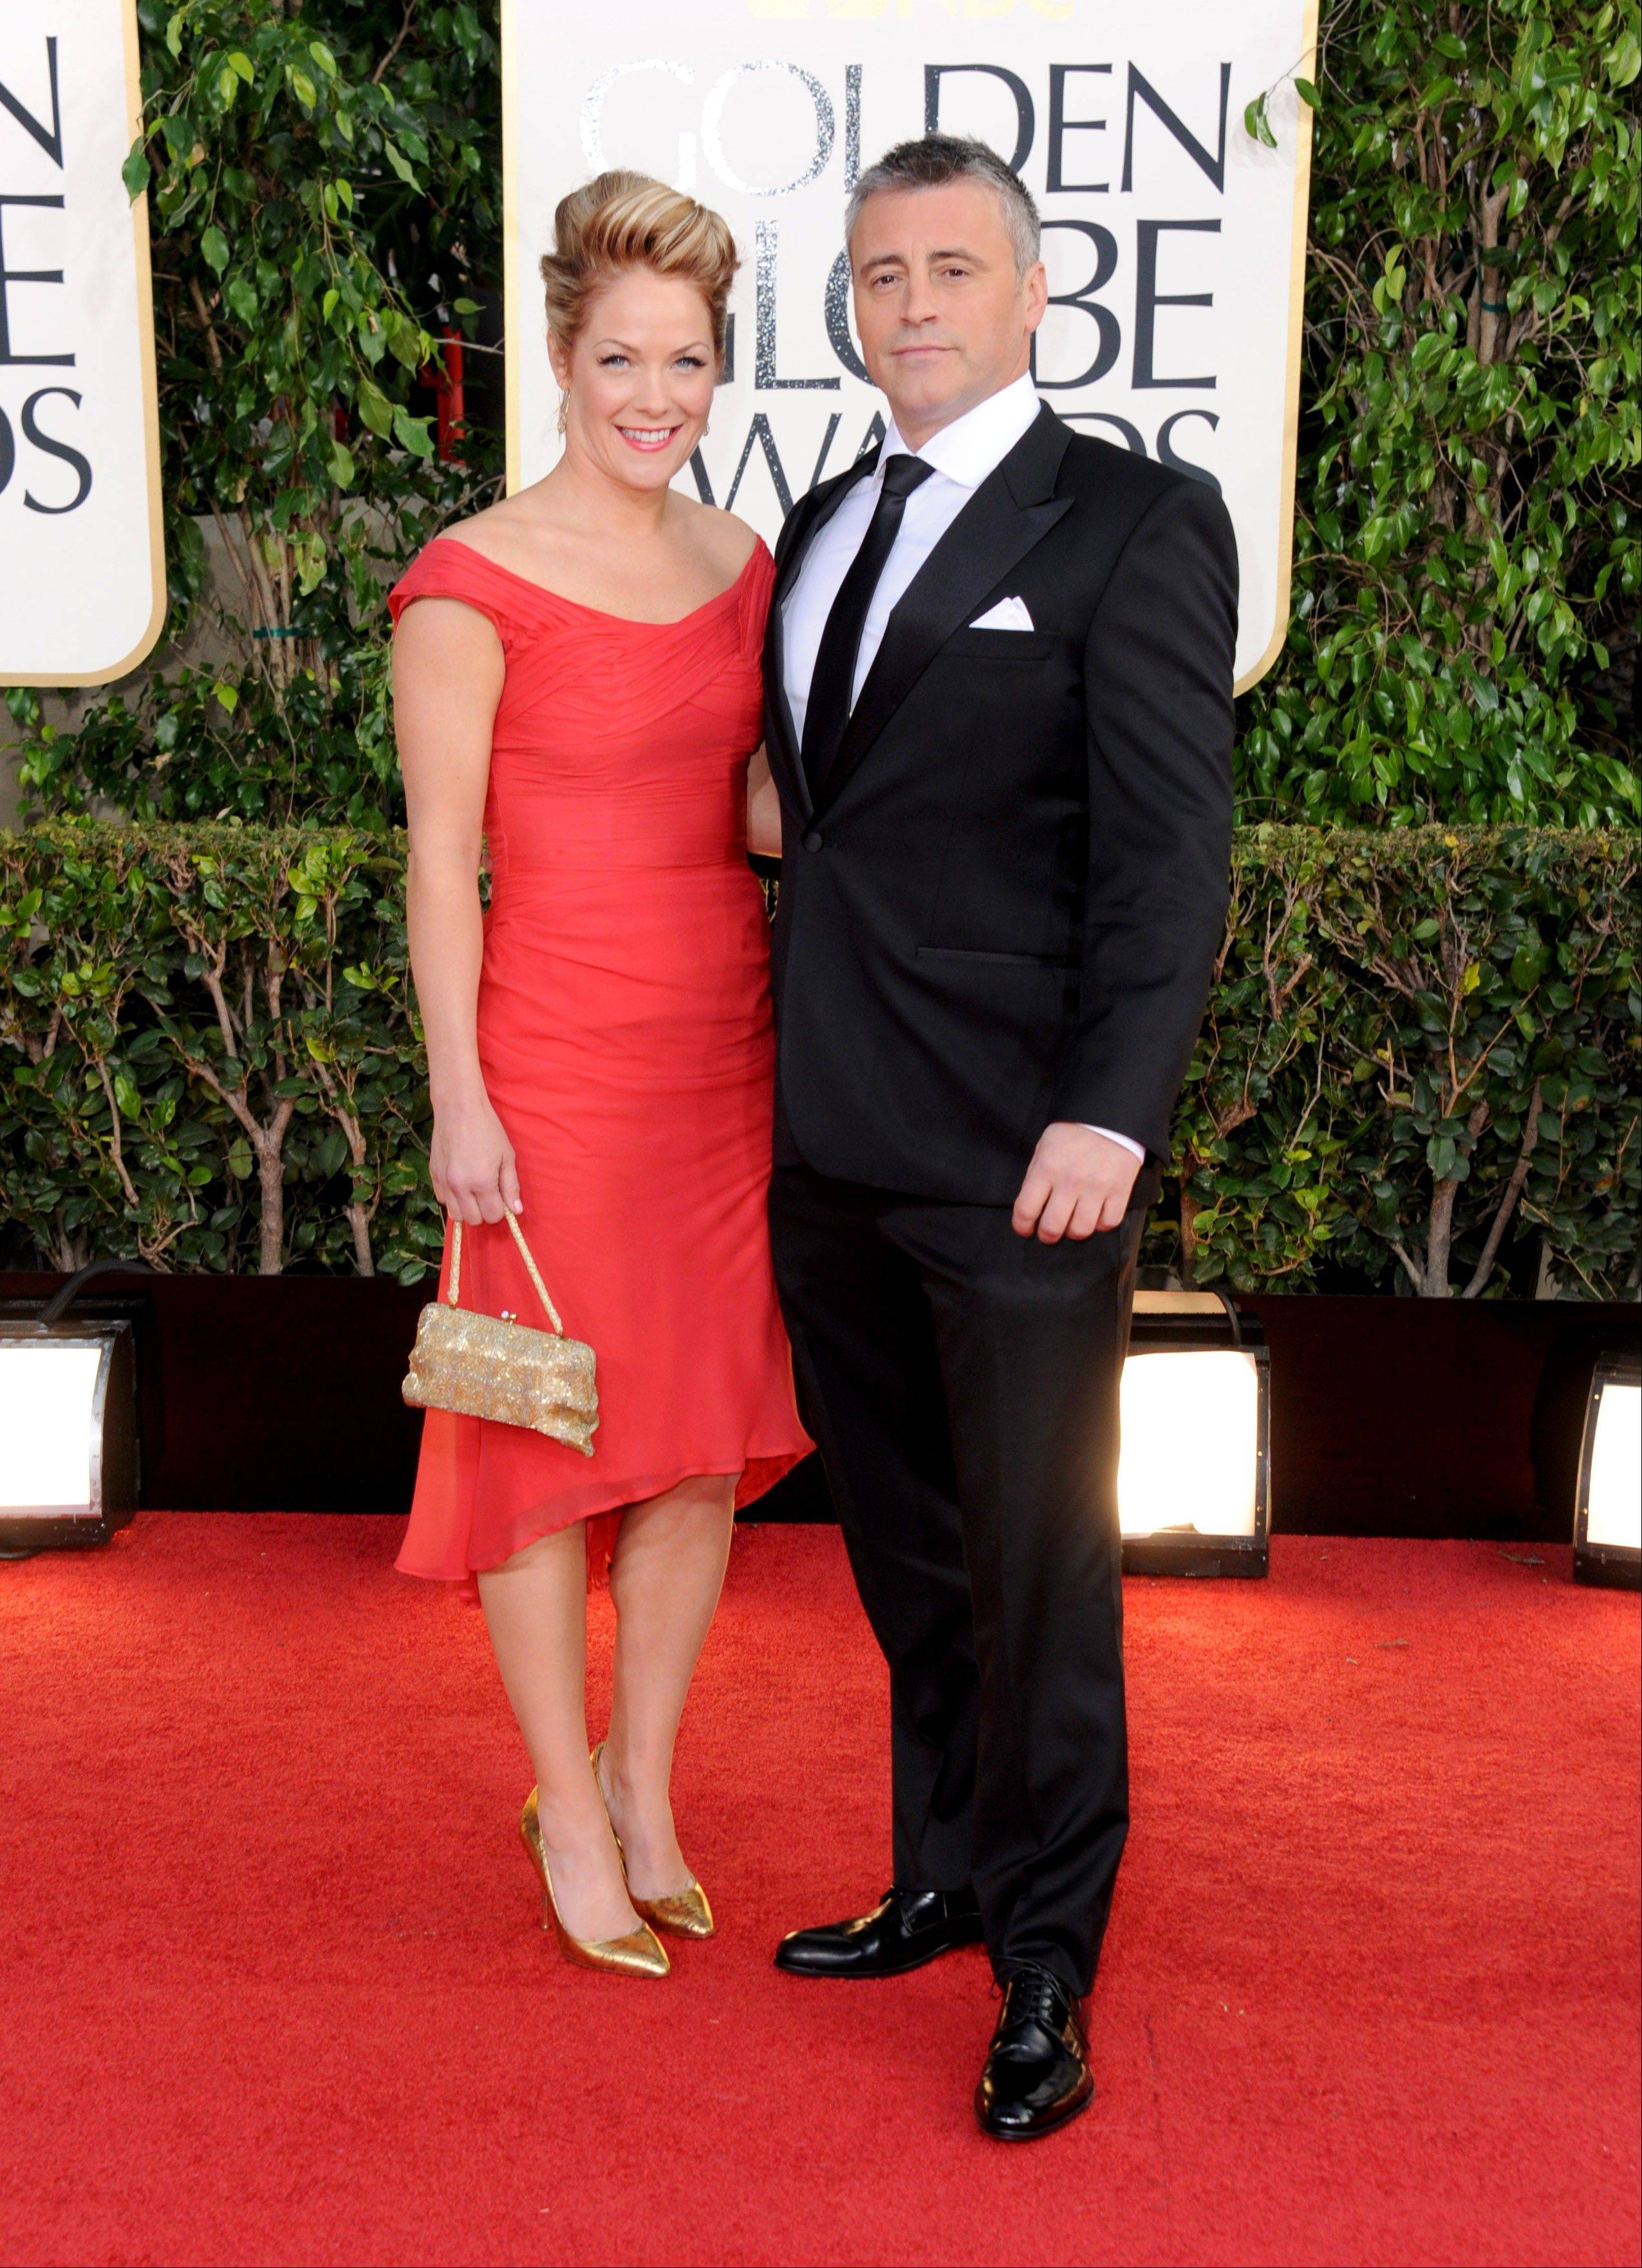 Actor Matt LeBlanc and his wife, Melissa McKnight, arrive at the 70th Annual Golden Globe Awards at the Beverly Hilton Hotel on Sunday Jan. 13, 2013, in Beverly Hills, Calif.